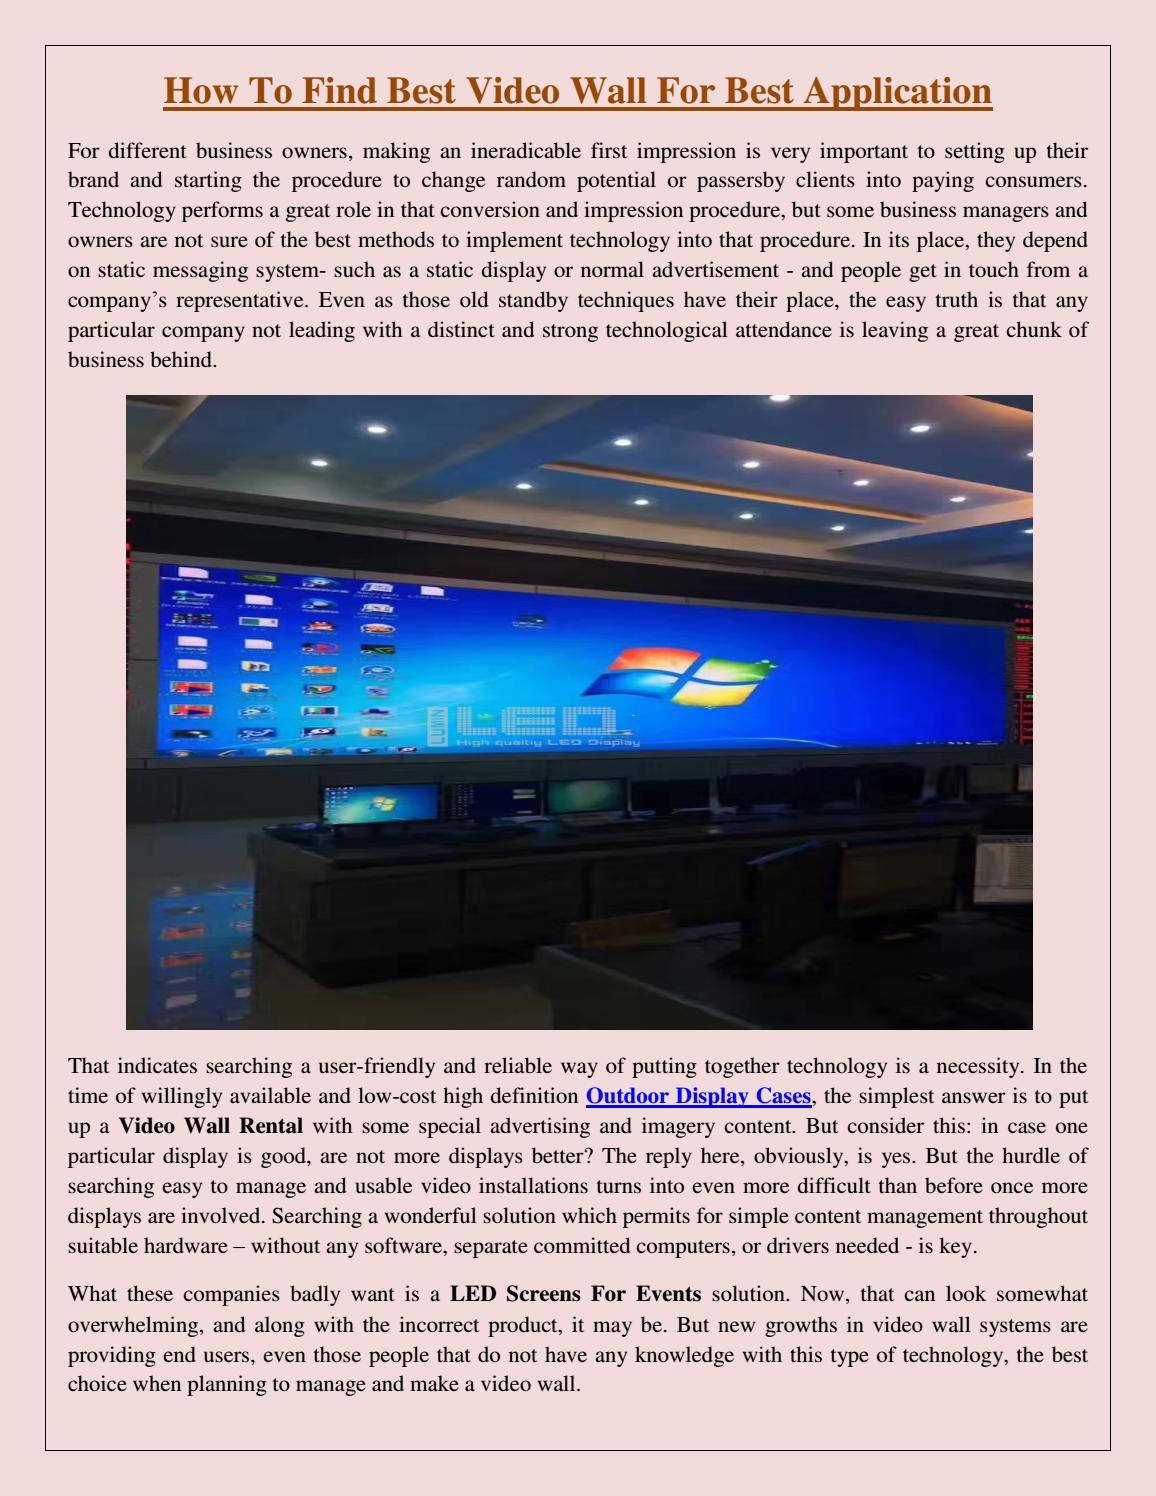 How To Find Best Video Wall For Best Application by